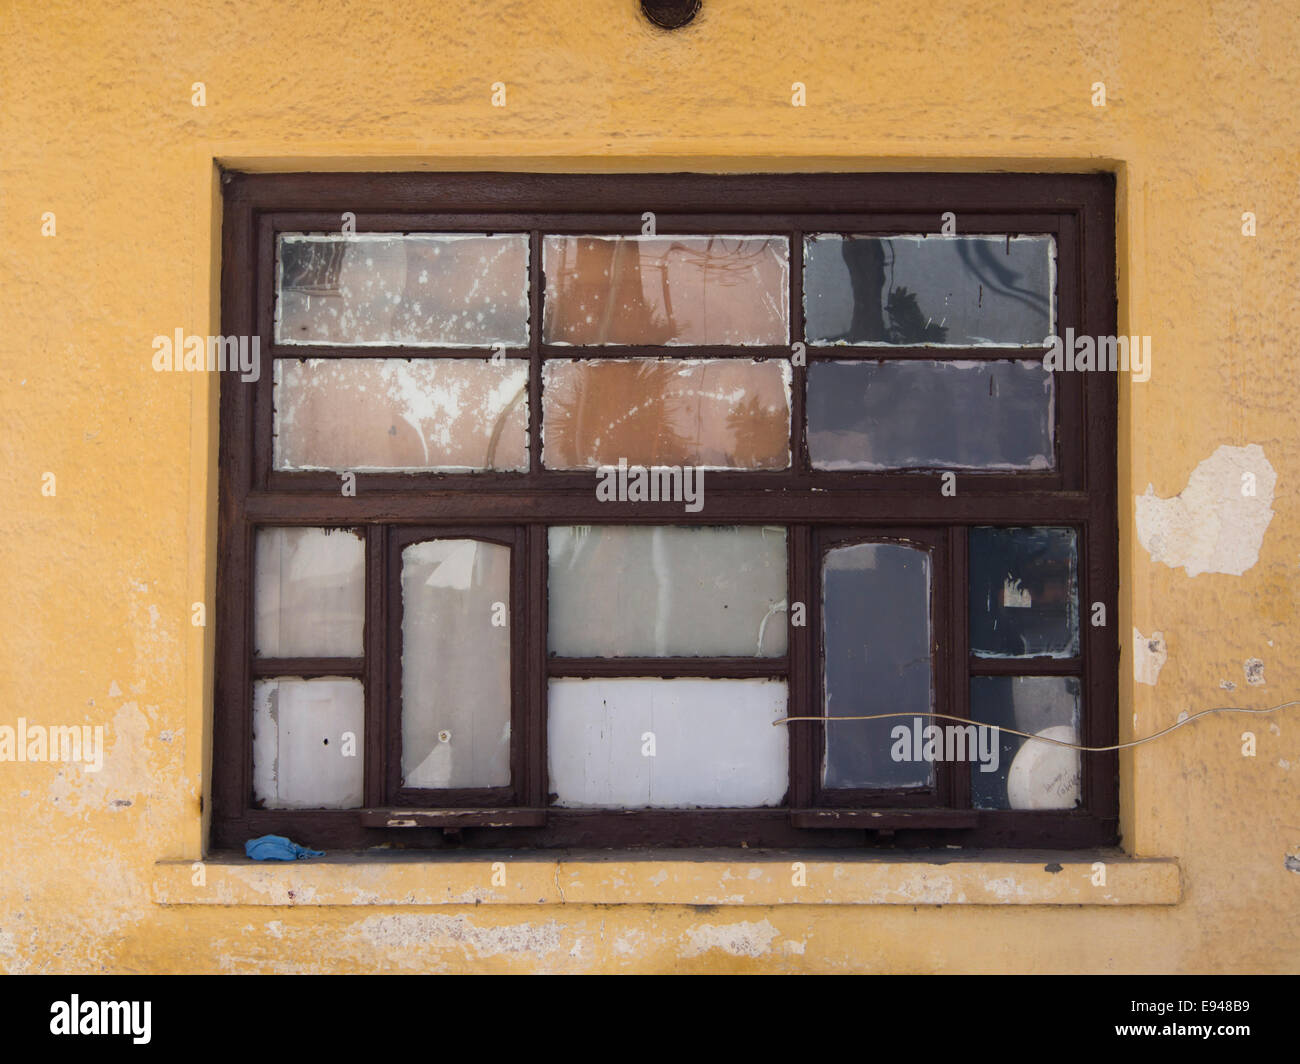 Old weathered window with 14 rectangular window panes subdued colour palette in yellow tan and brown, Samos Greece - Stock Image